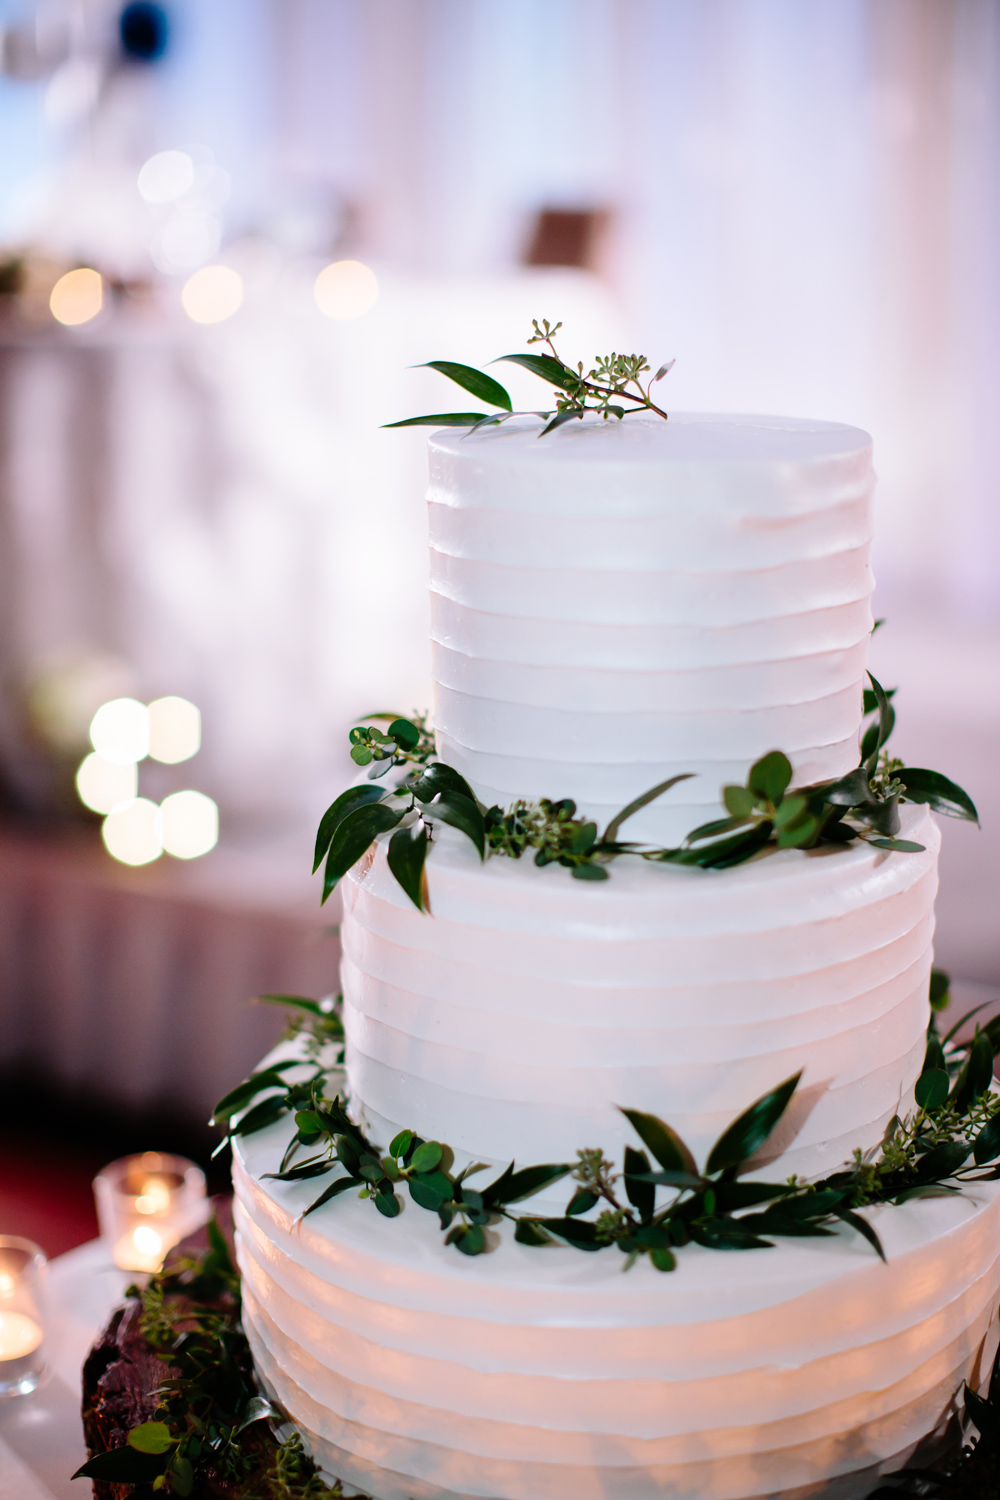 Whippt Desserts - Wedding Cake Aug 2018 - credit Svetlana Yanova Photography